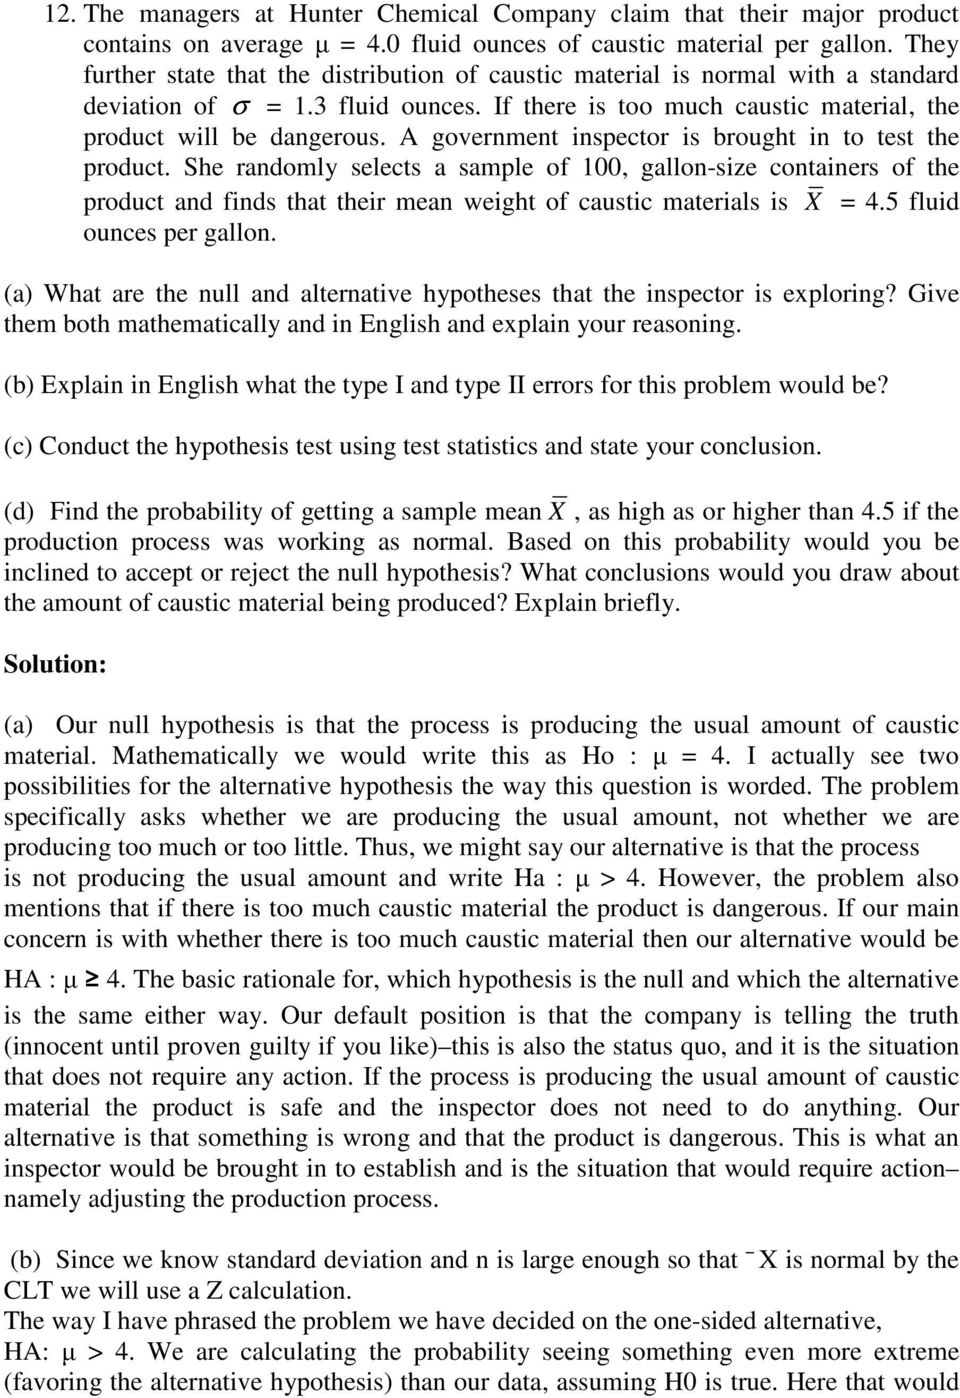 Solutions To Questions On Hypothesis Testing And Regression Pdf Free Download [ 1398 x 960 Pixel ]